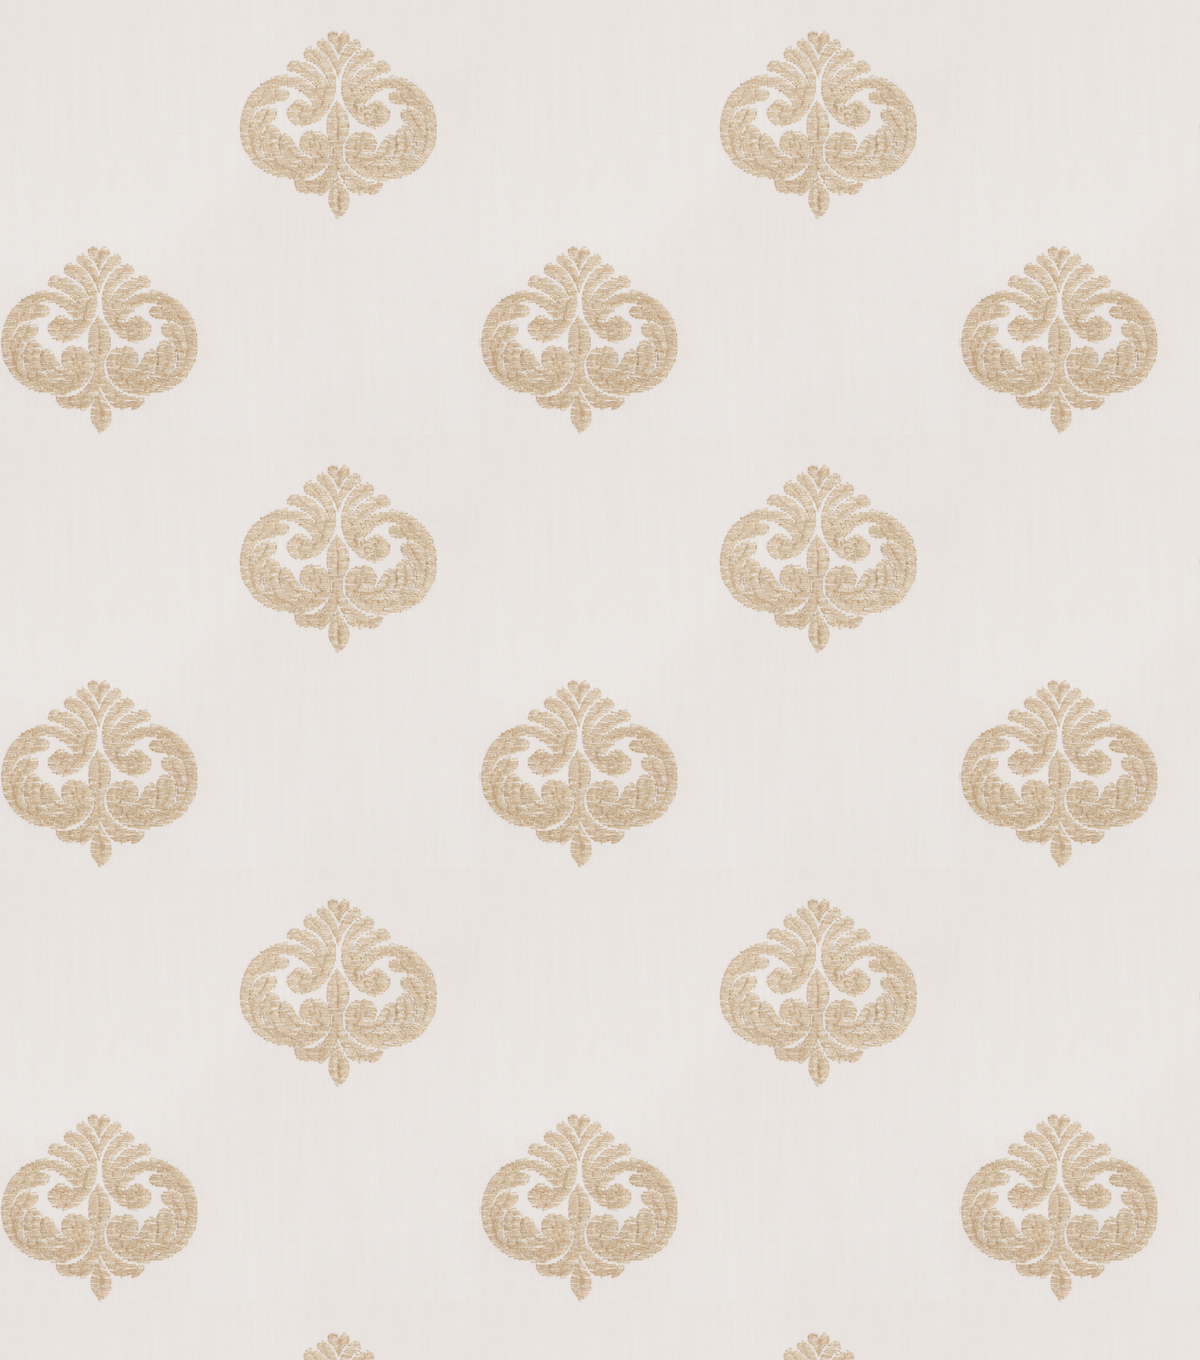 Eaton Square Lightweight Decor Fabric 49\u0022-Reilly/Spun Gold